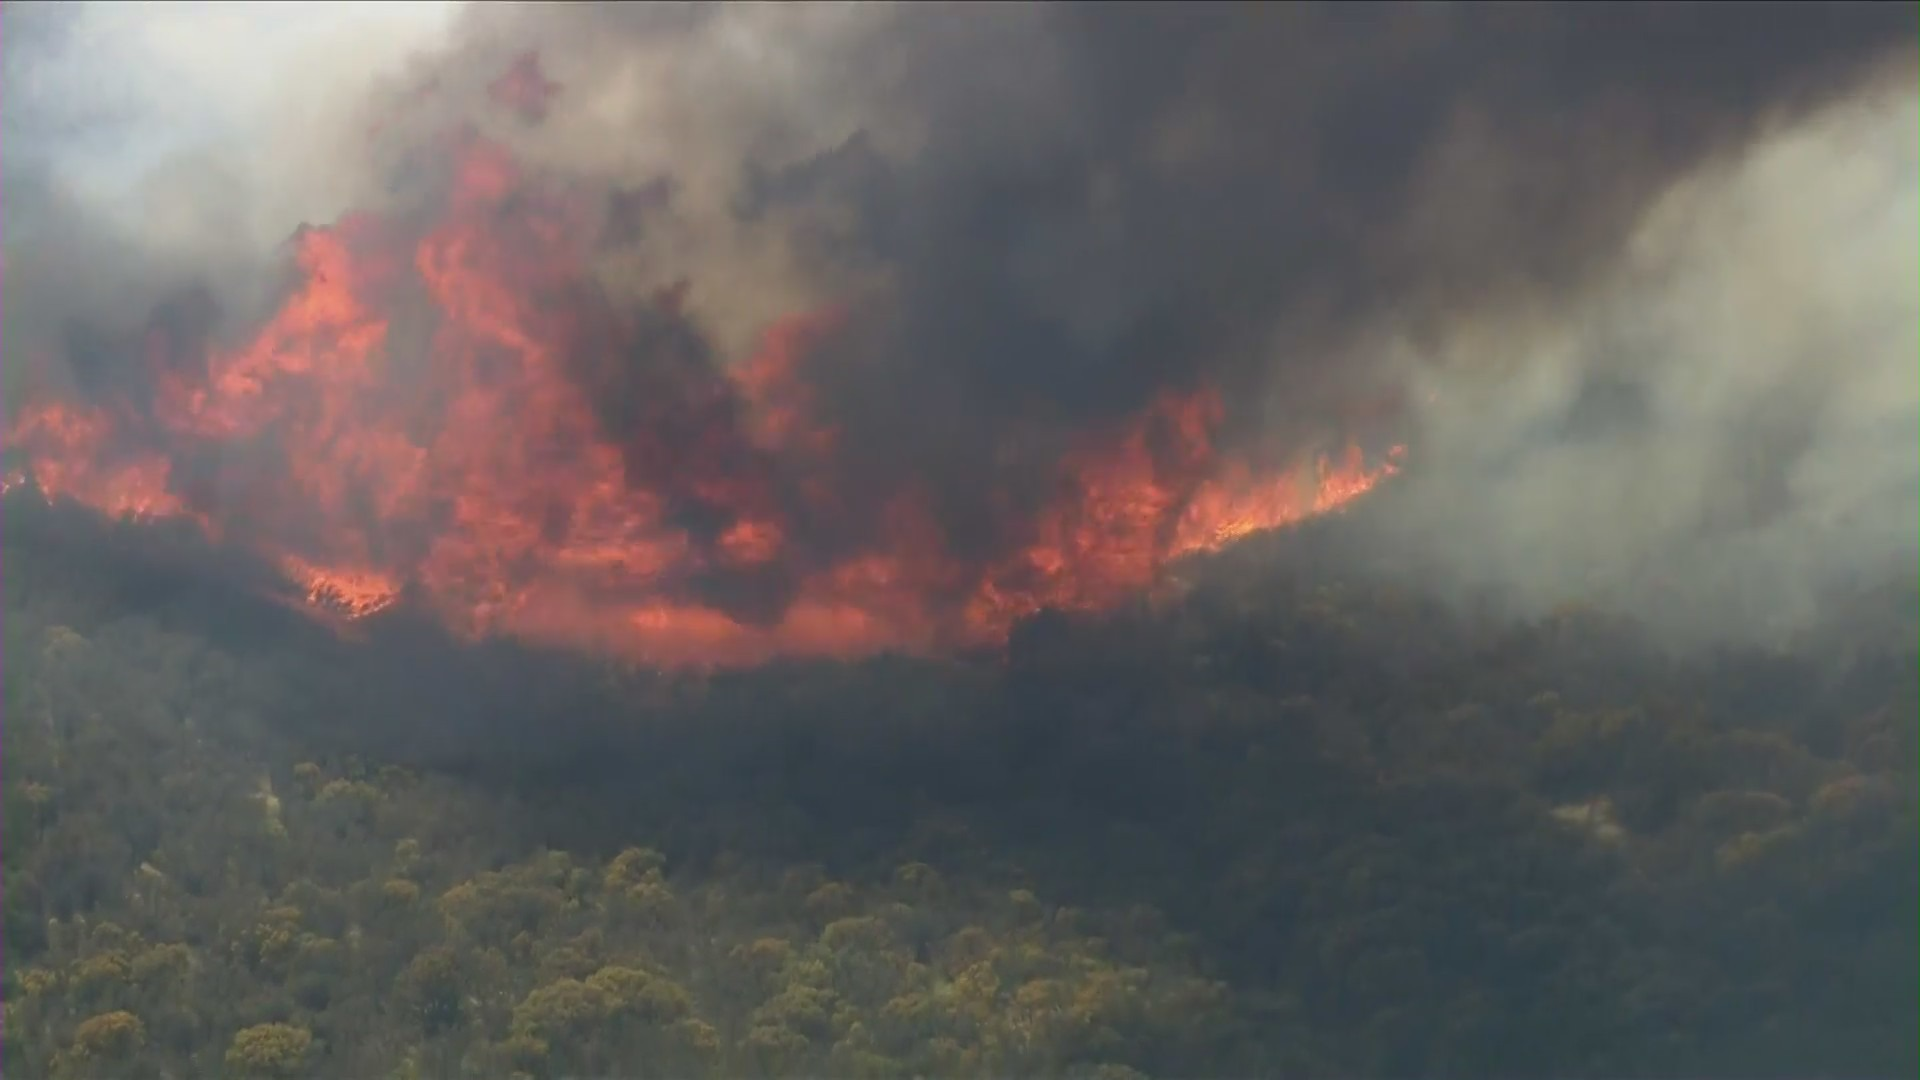 The Emigrant burned out of control near Lake Pyramid on Sept. 17, 2021. (KTLA)